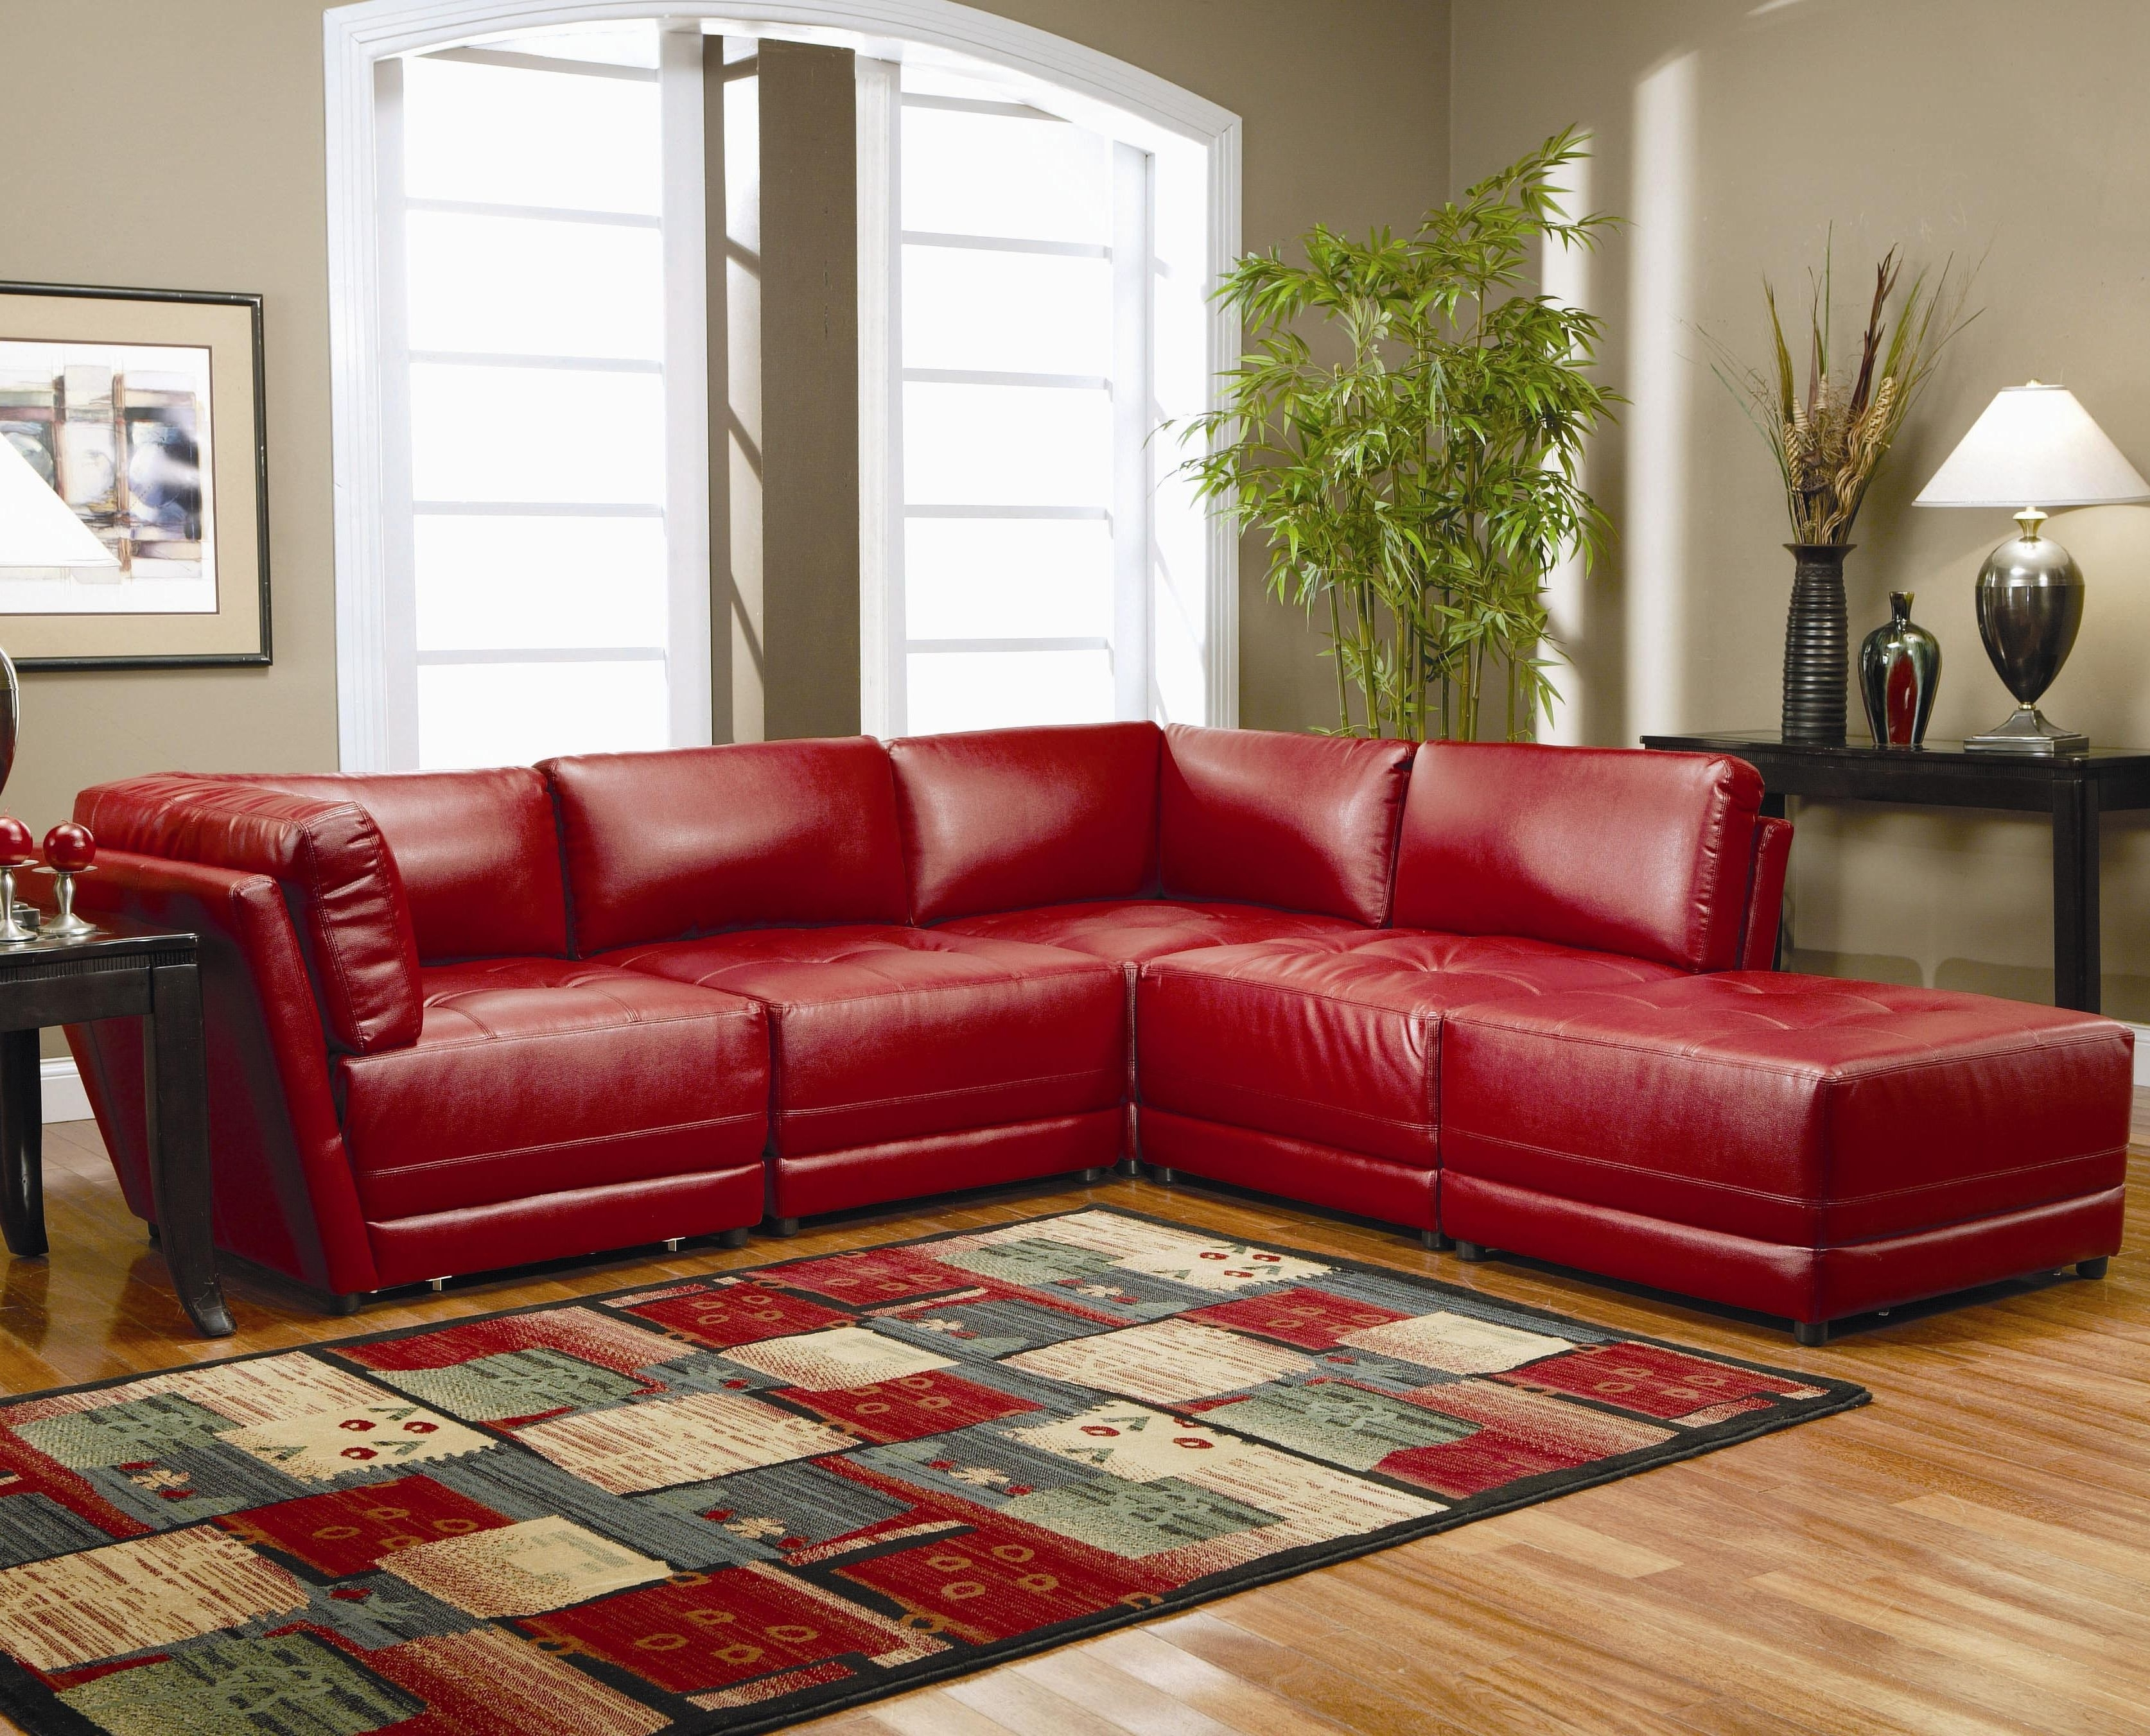 Sofa : Bassett Sectional Sofa Power Reclining Sectional Sofa Tight intended for Small Red Leather Sectional Sofas (Image 10 of 15)